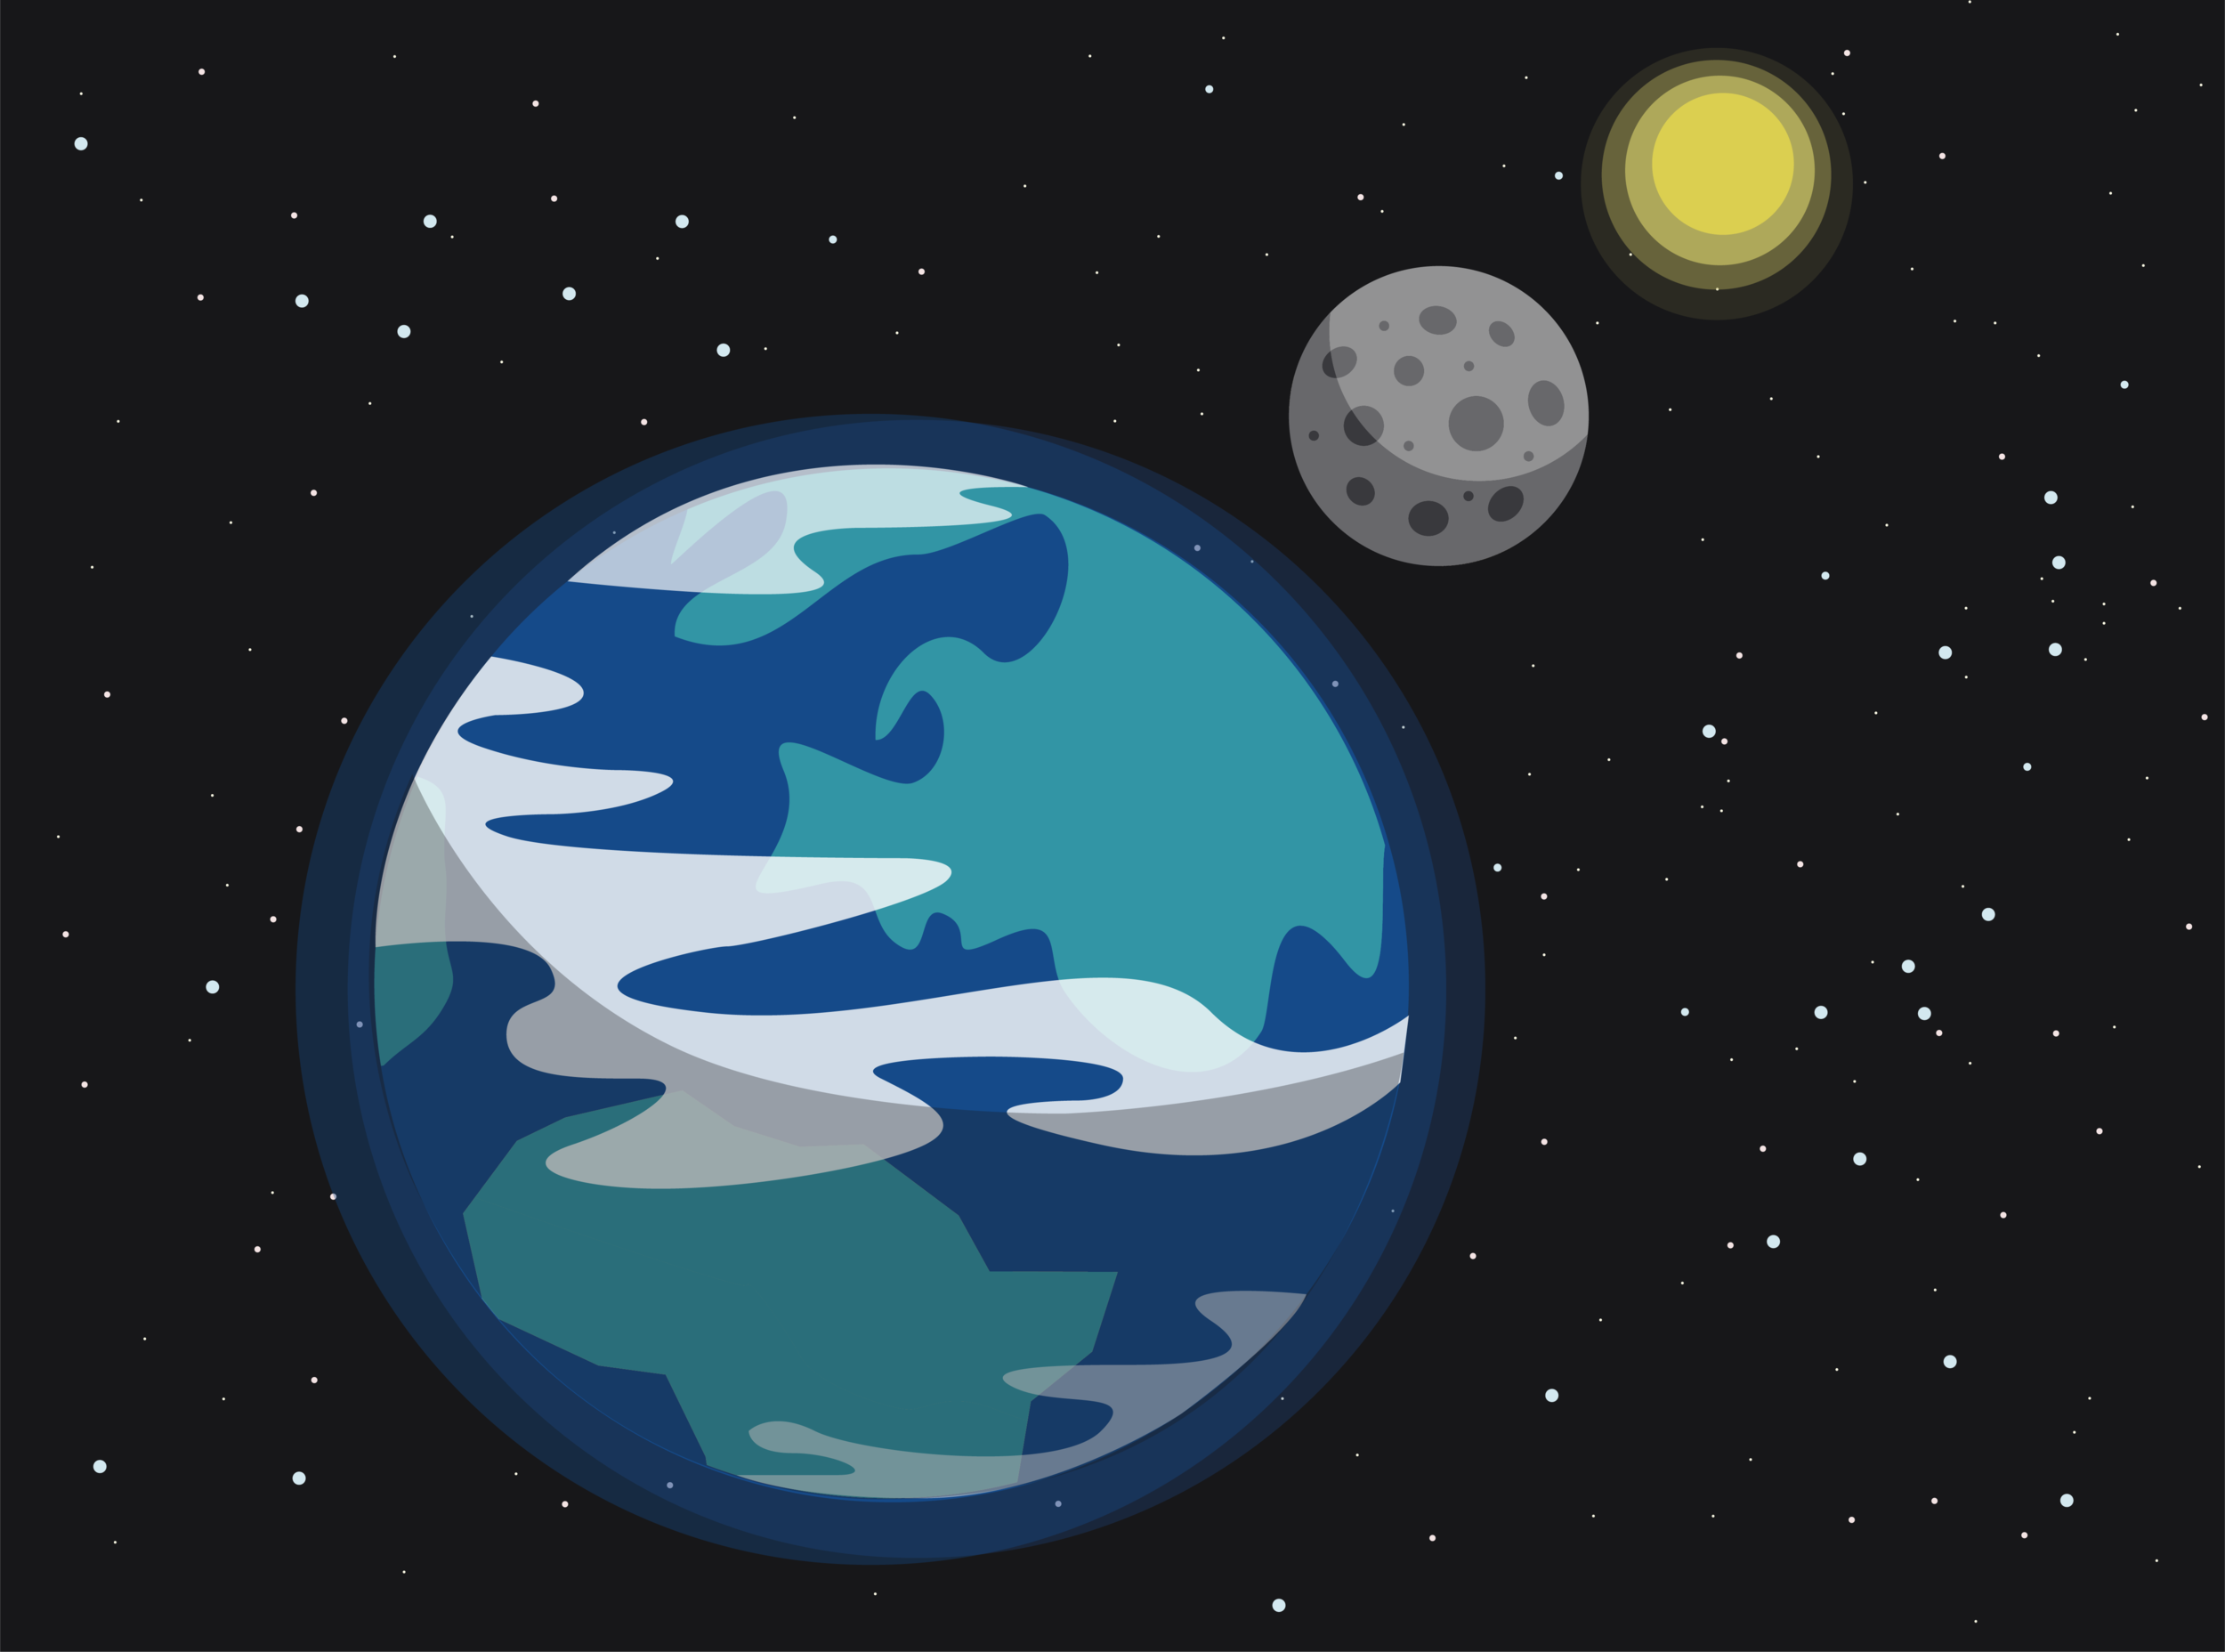 Earth_Moon_Sun.png